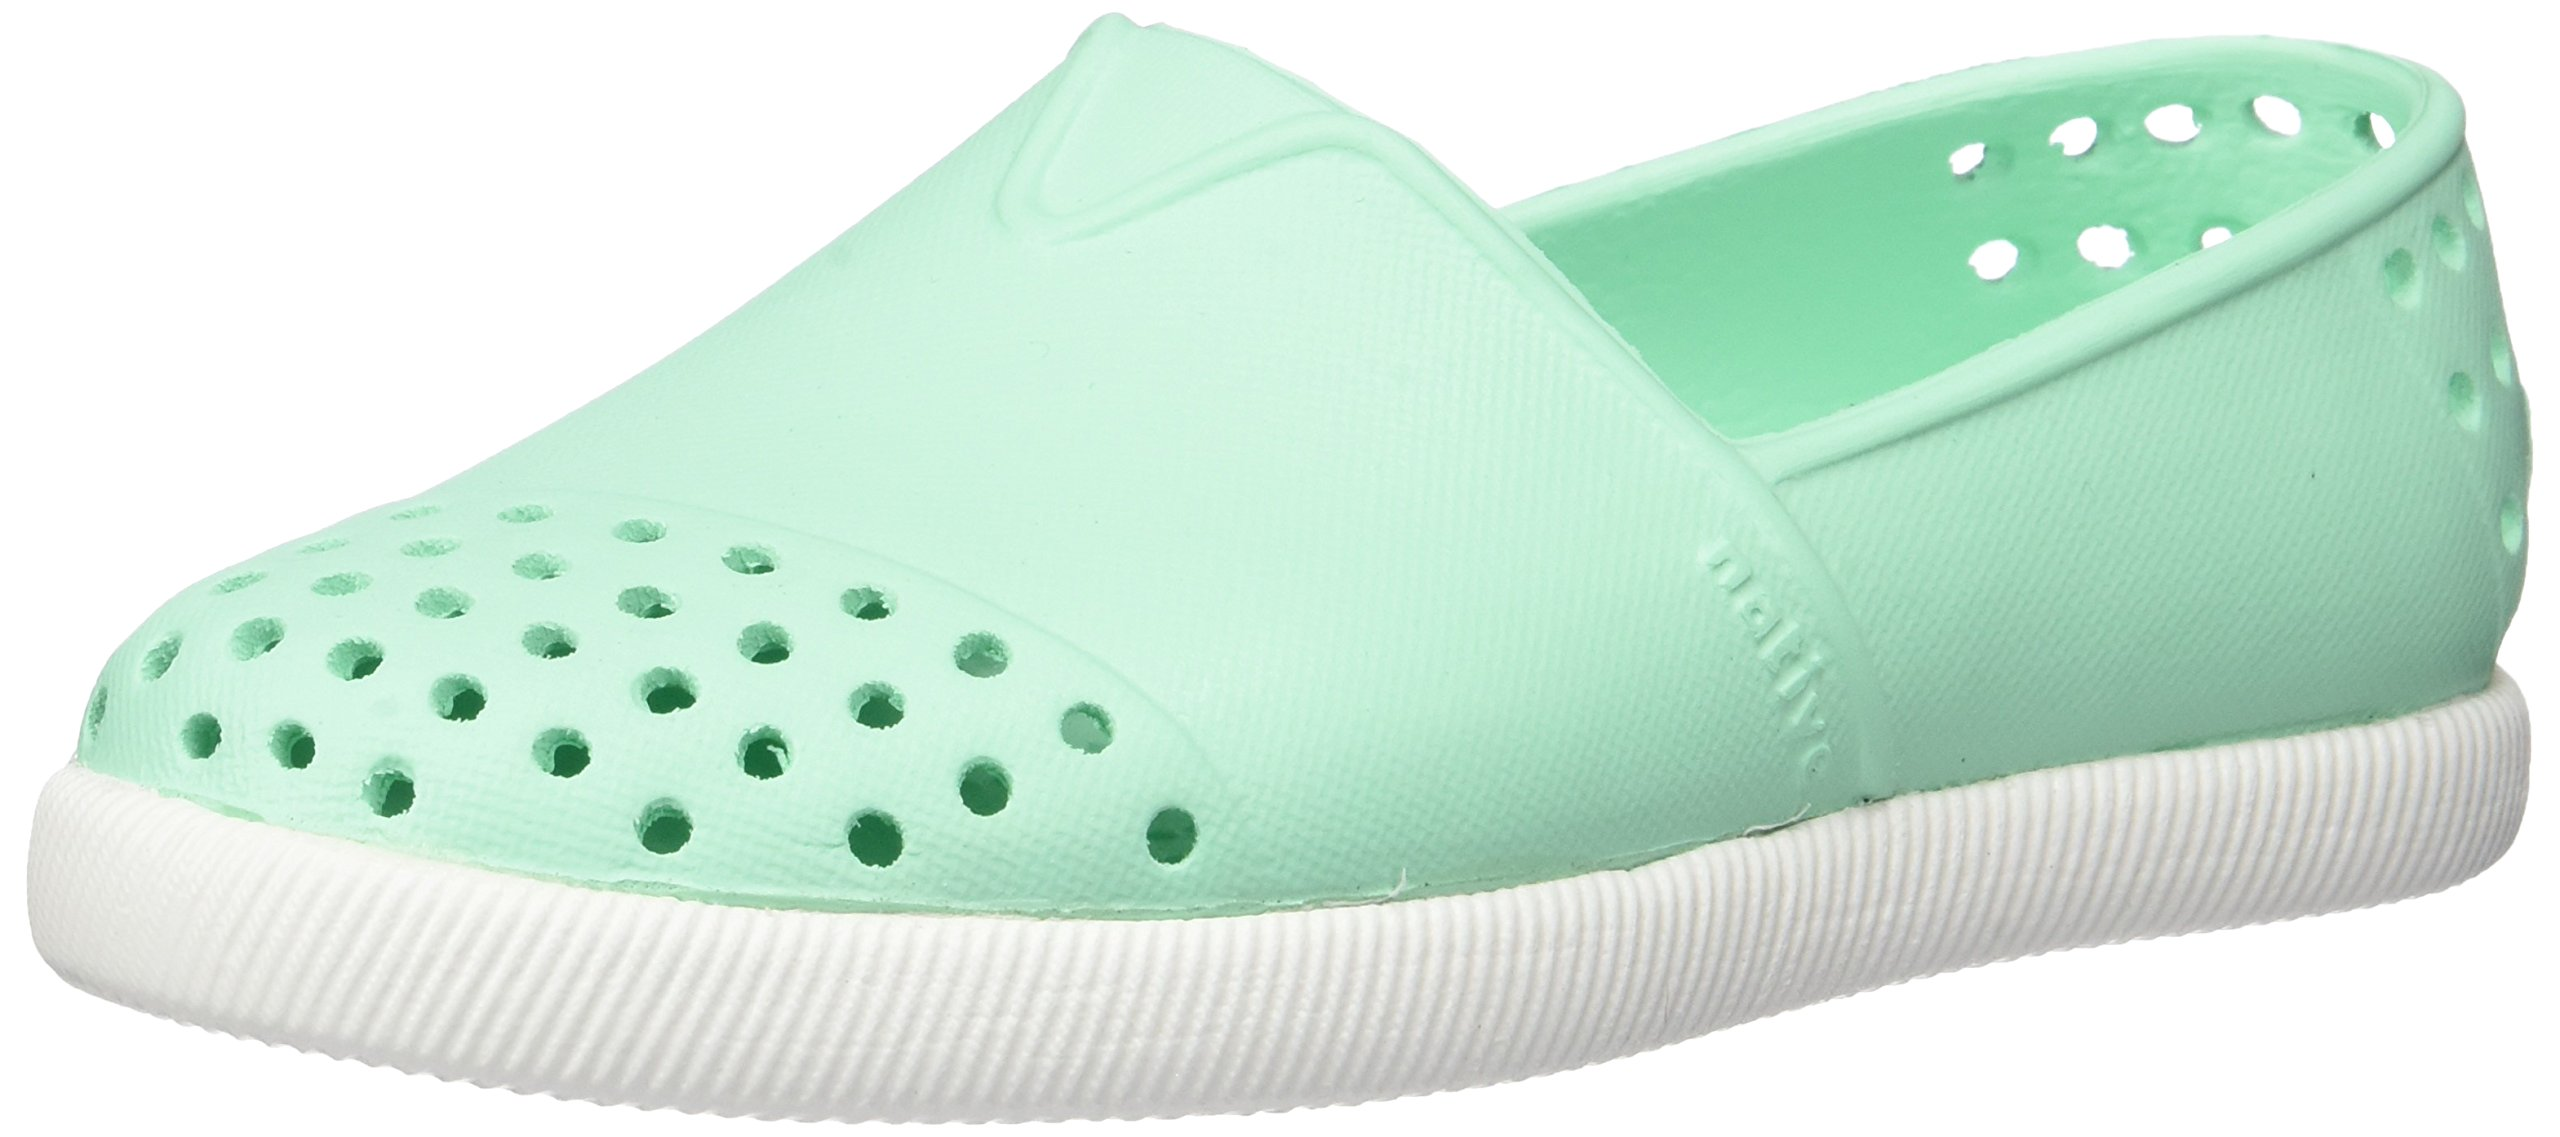 native Kids Kids' Verona Slip-on, Glass Green/Shell White, 5 M US Toddler